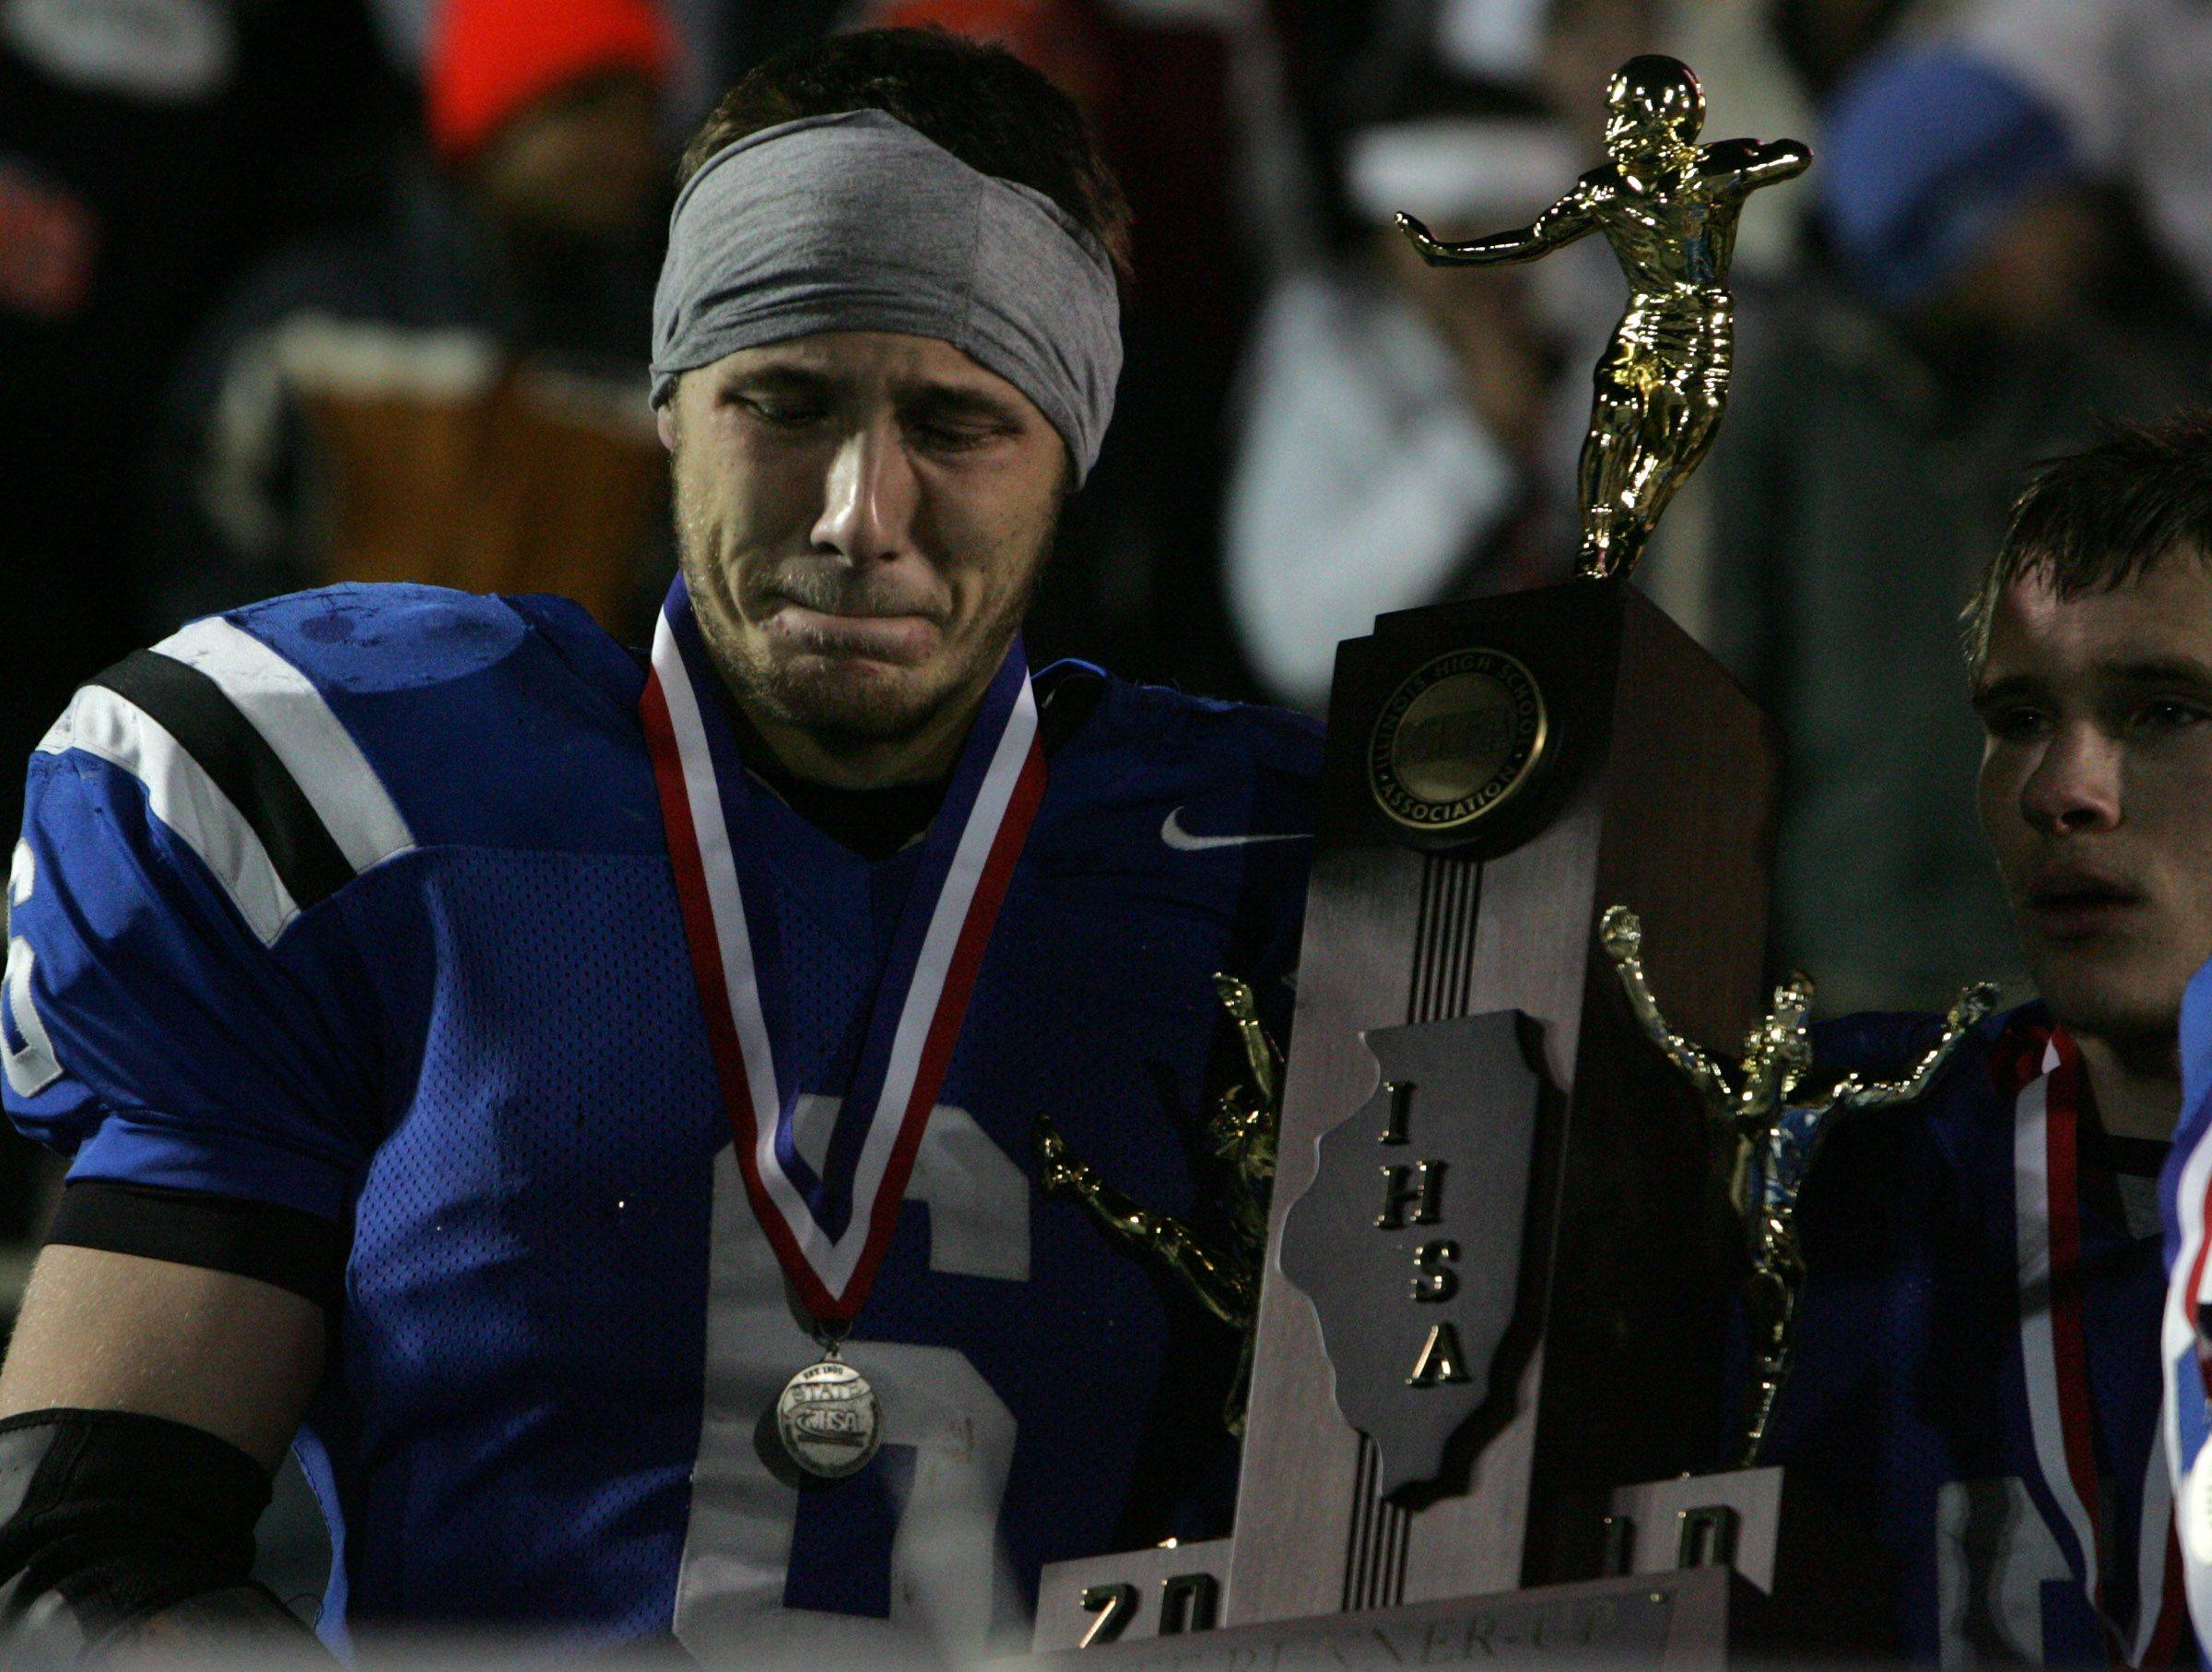 Lake Zurich's JJH Raffelson holds the place trophy after losing to Wheaton Warrenville South 28-17 in the 7A state title game in Champaign on Saturday, November 27.